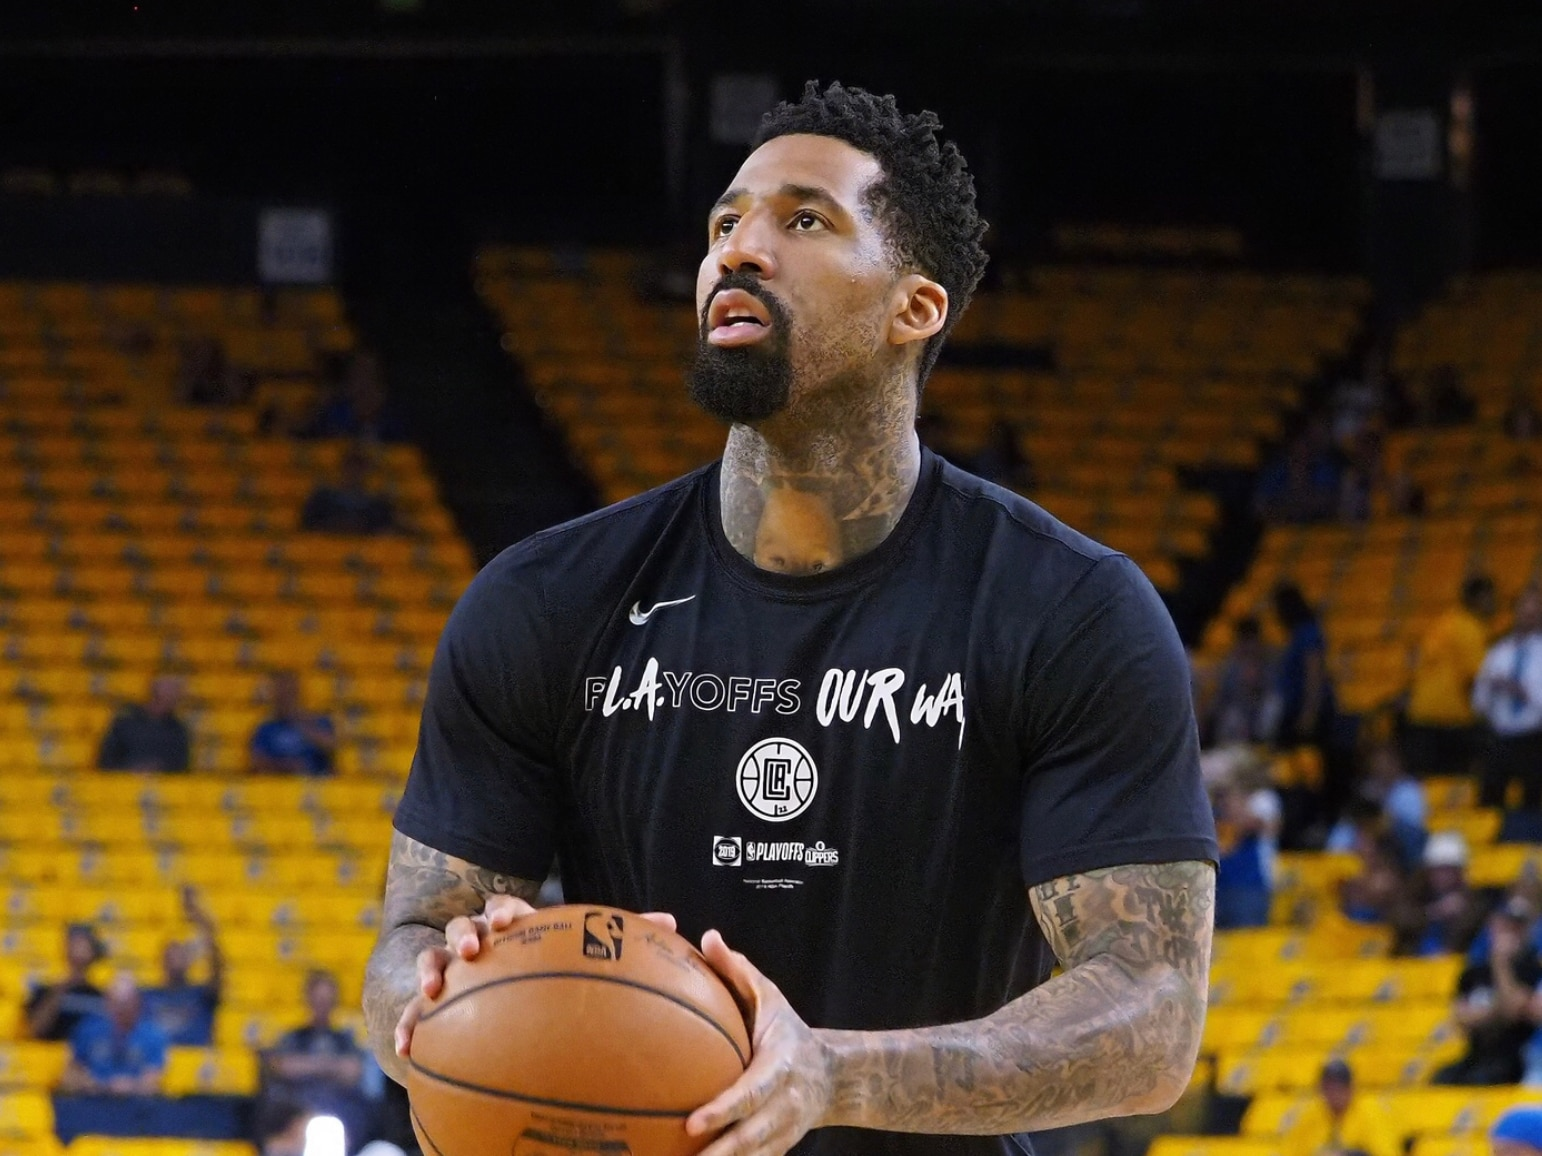 Report: Nets F Wilson Chandler facing 25-game PED suspension